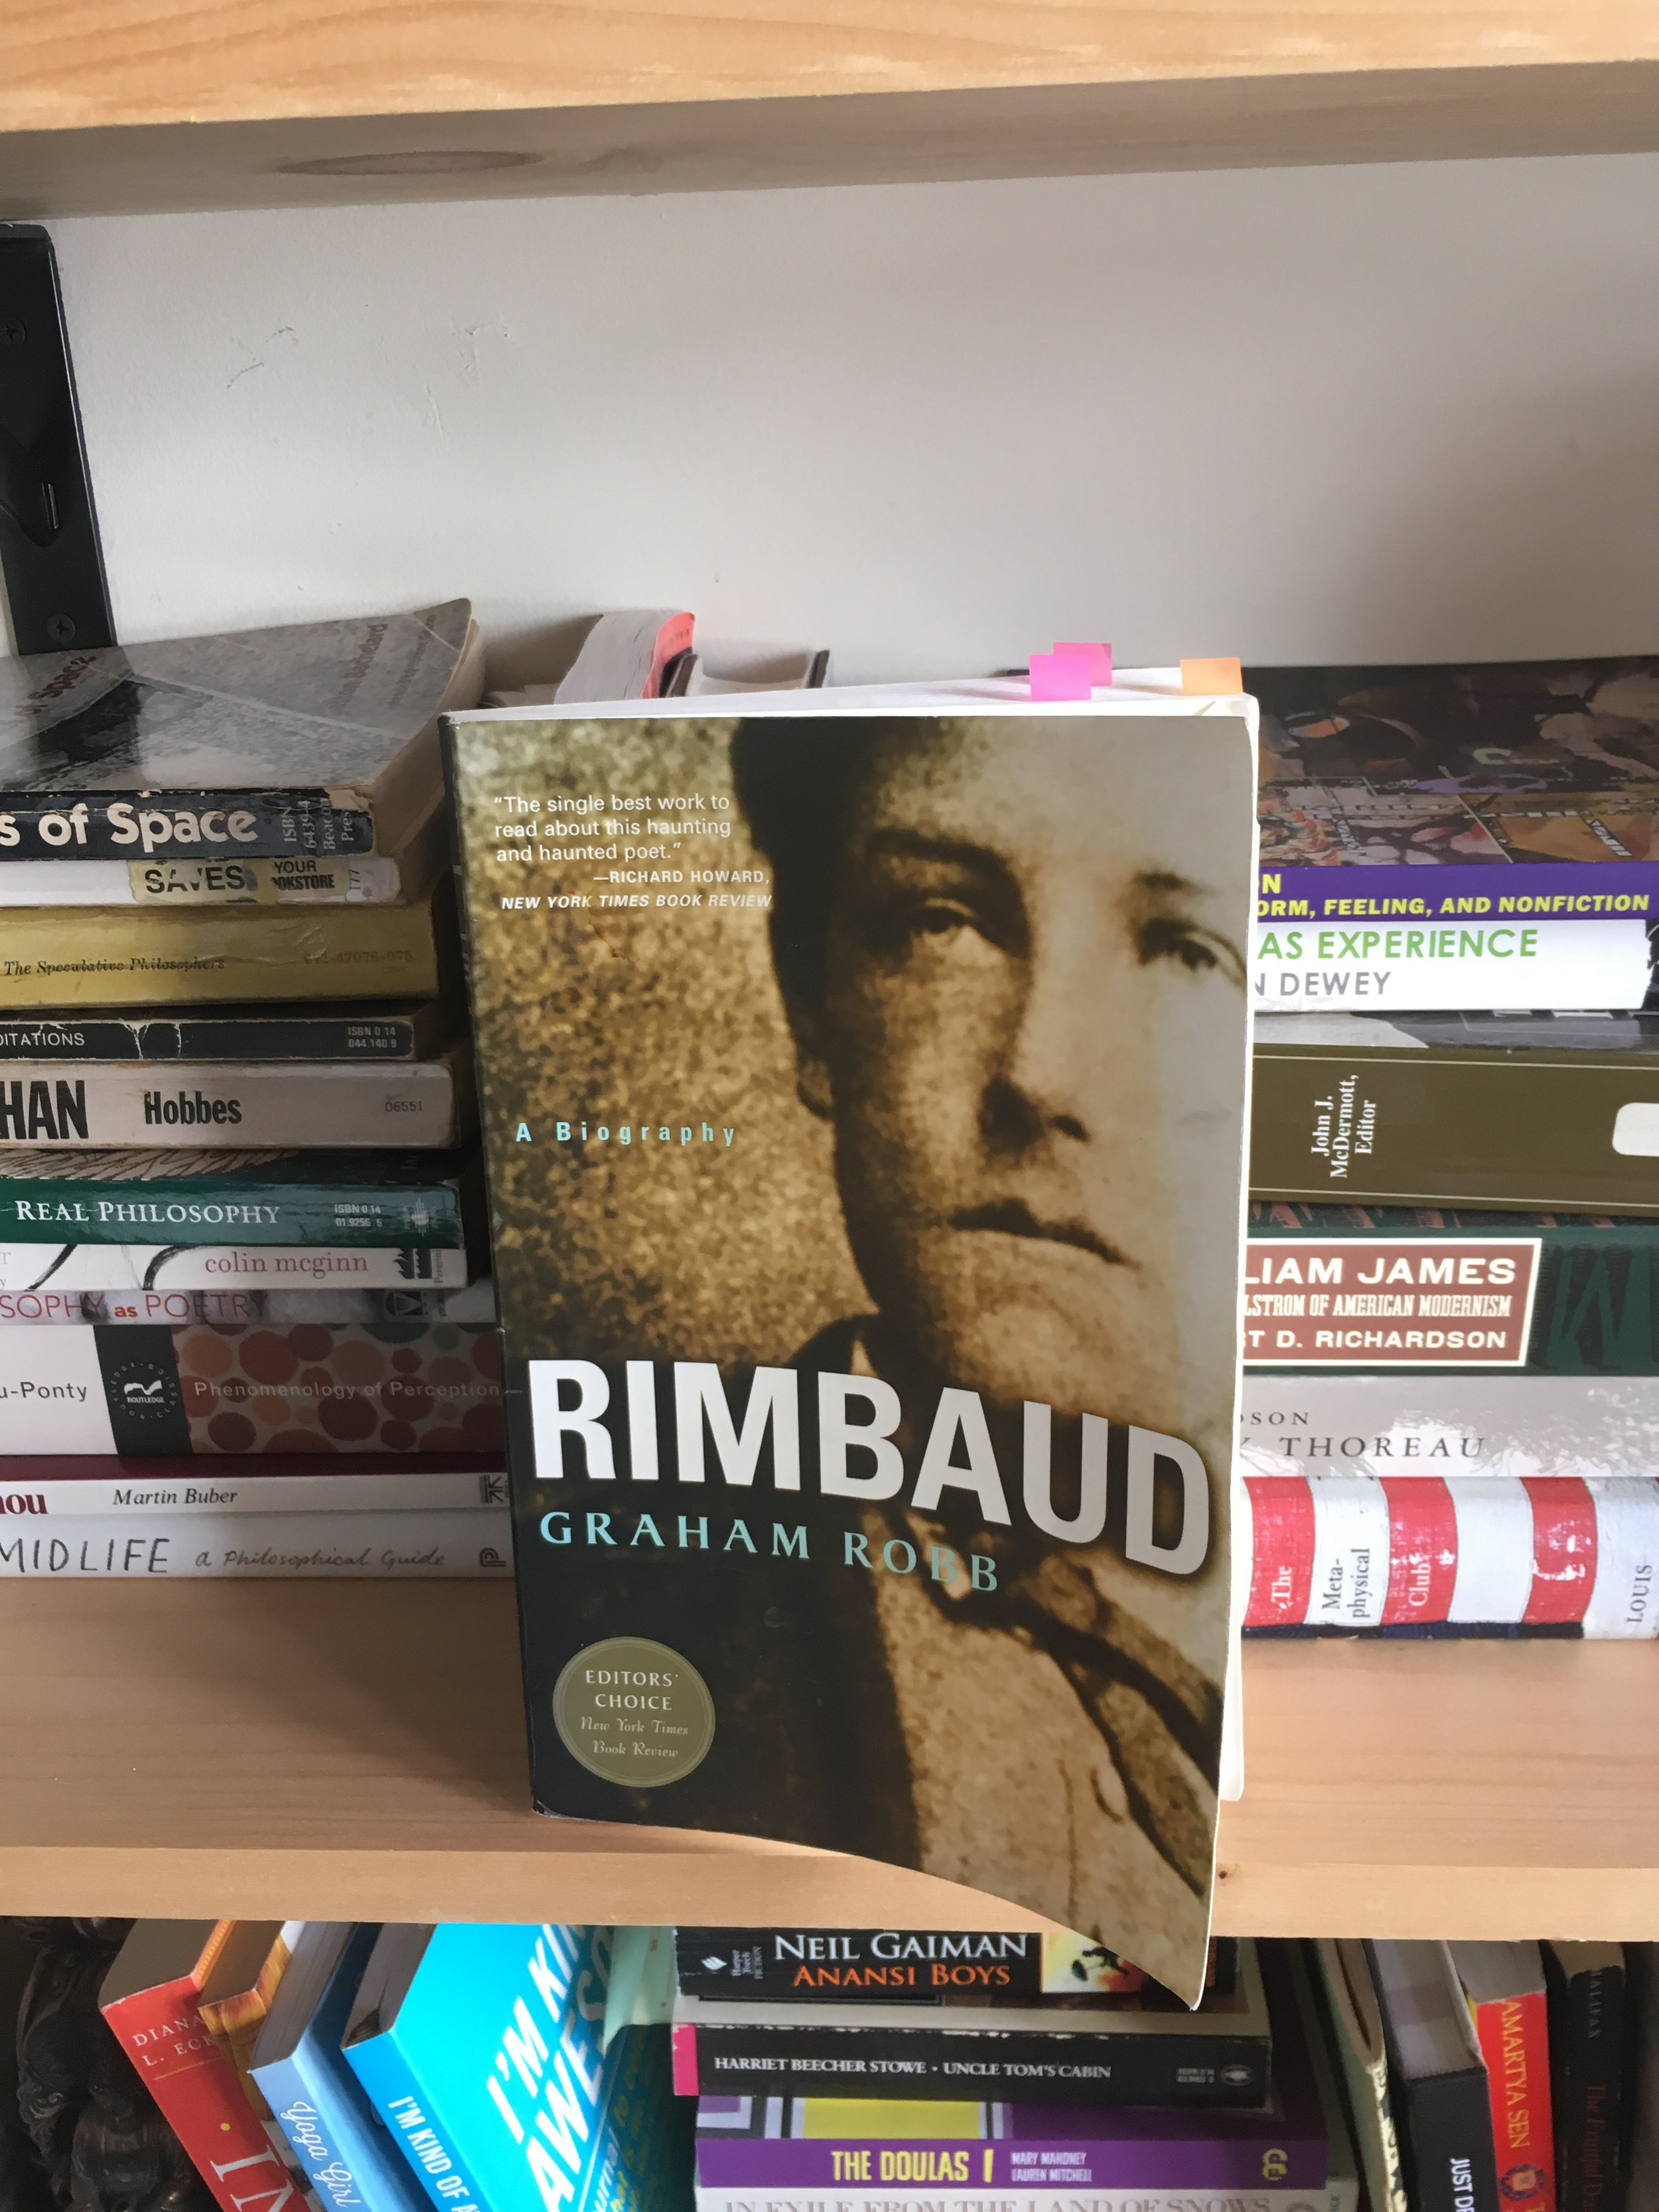 Rimbaud: A Biography - Graham Robb